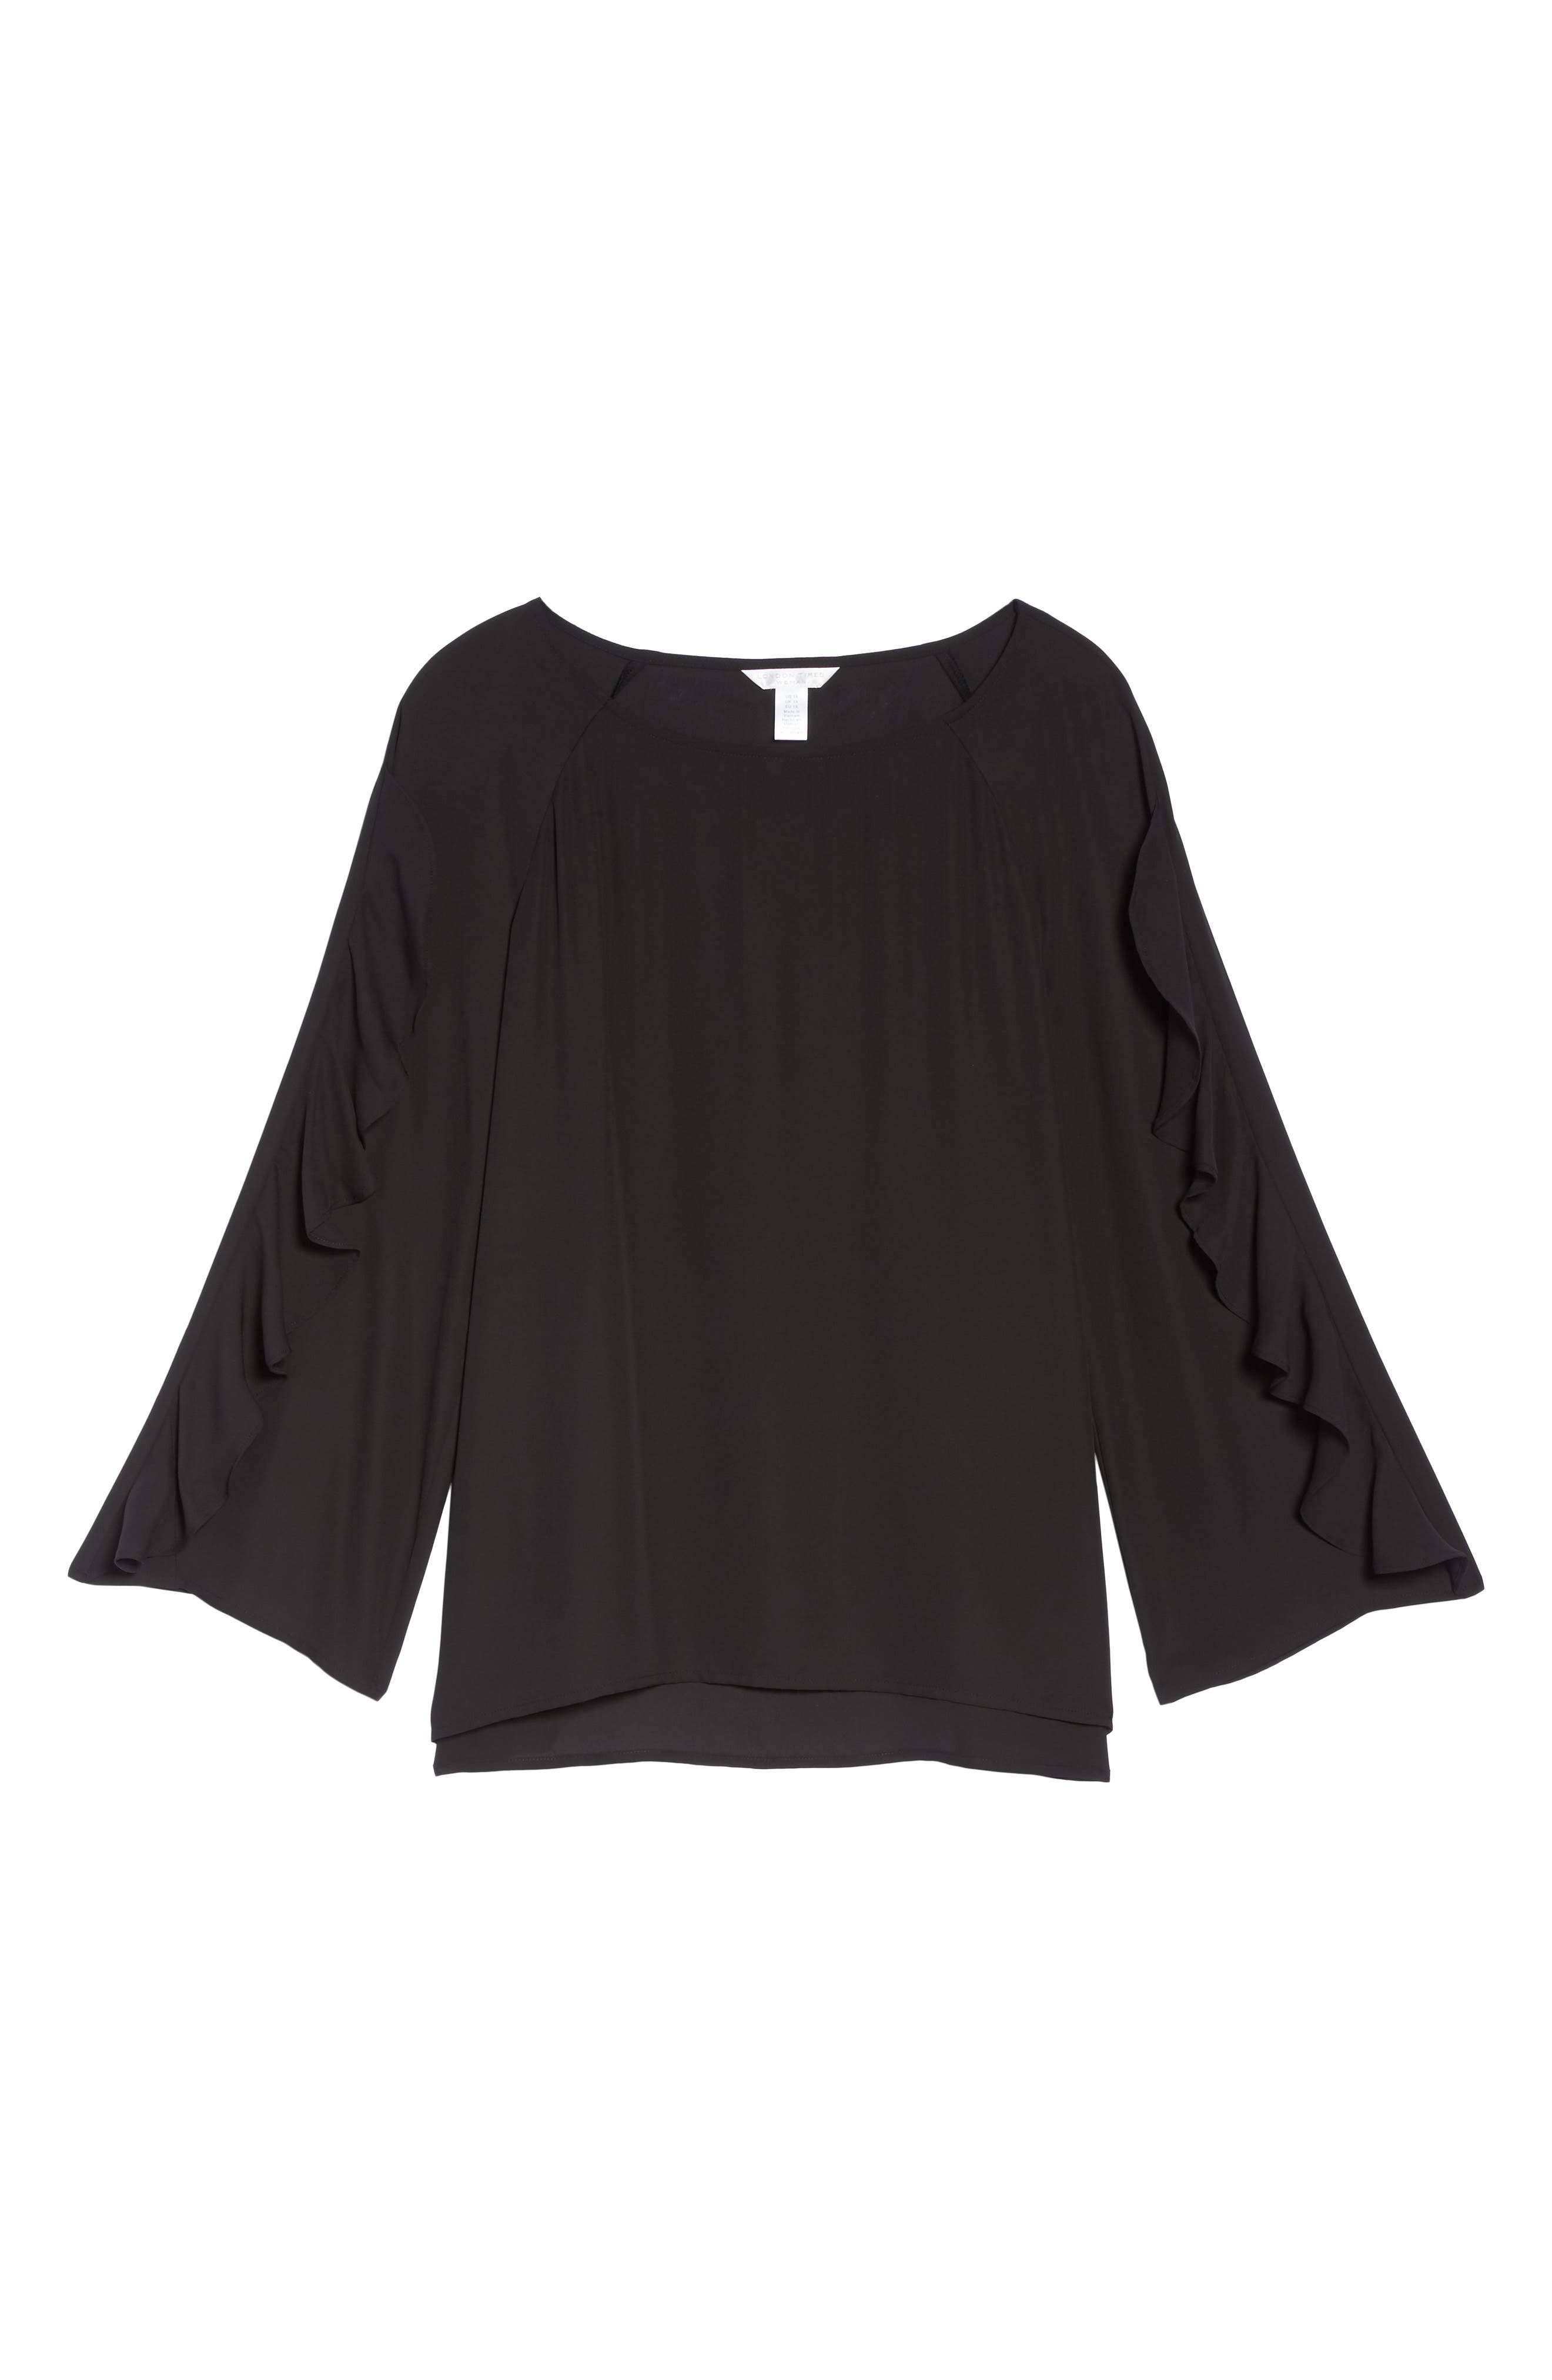 Ruffle Bell Sleeve Blouse,                             Alternate thumbnail 6, color,                             001